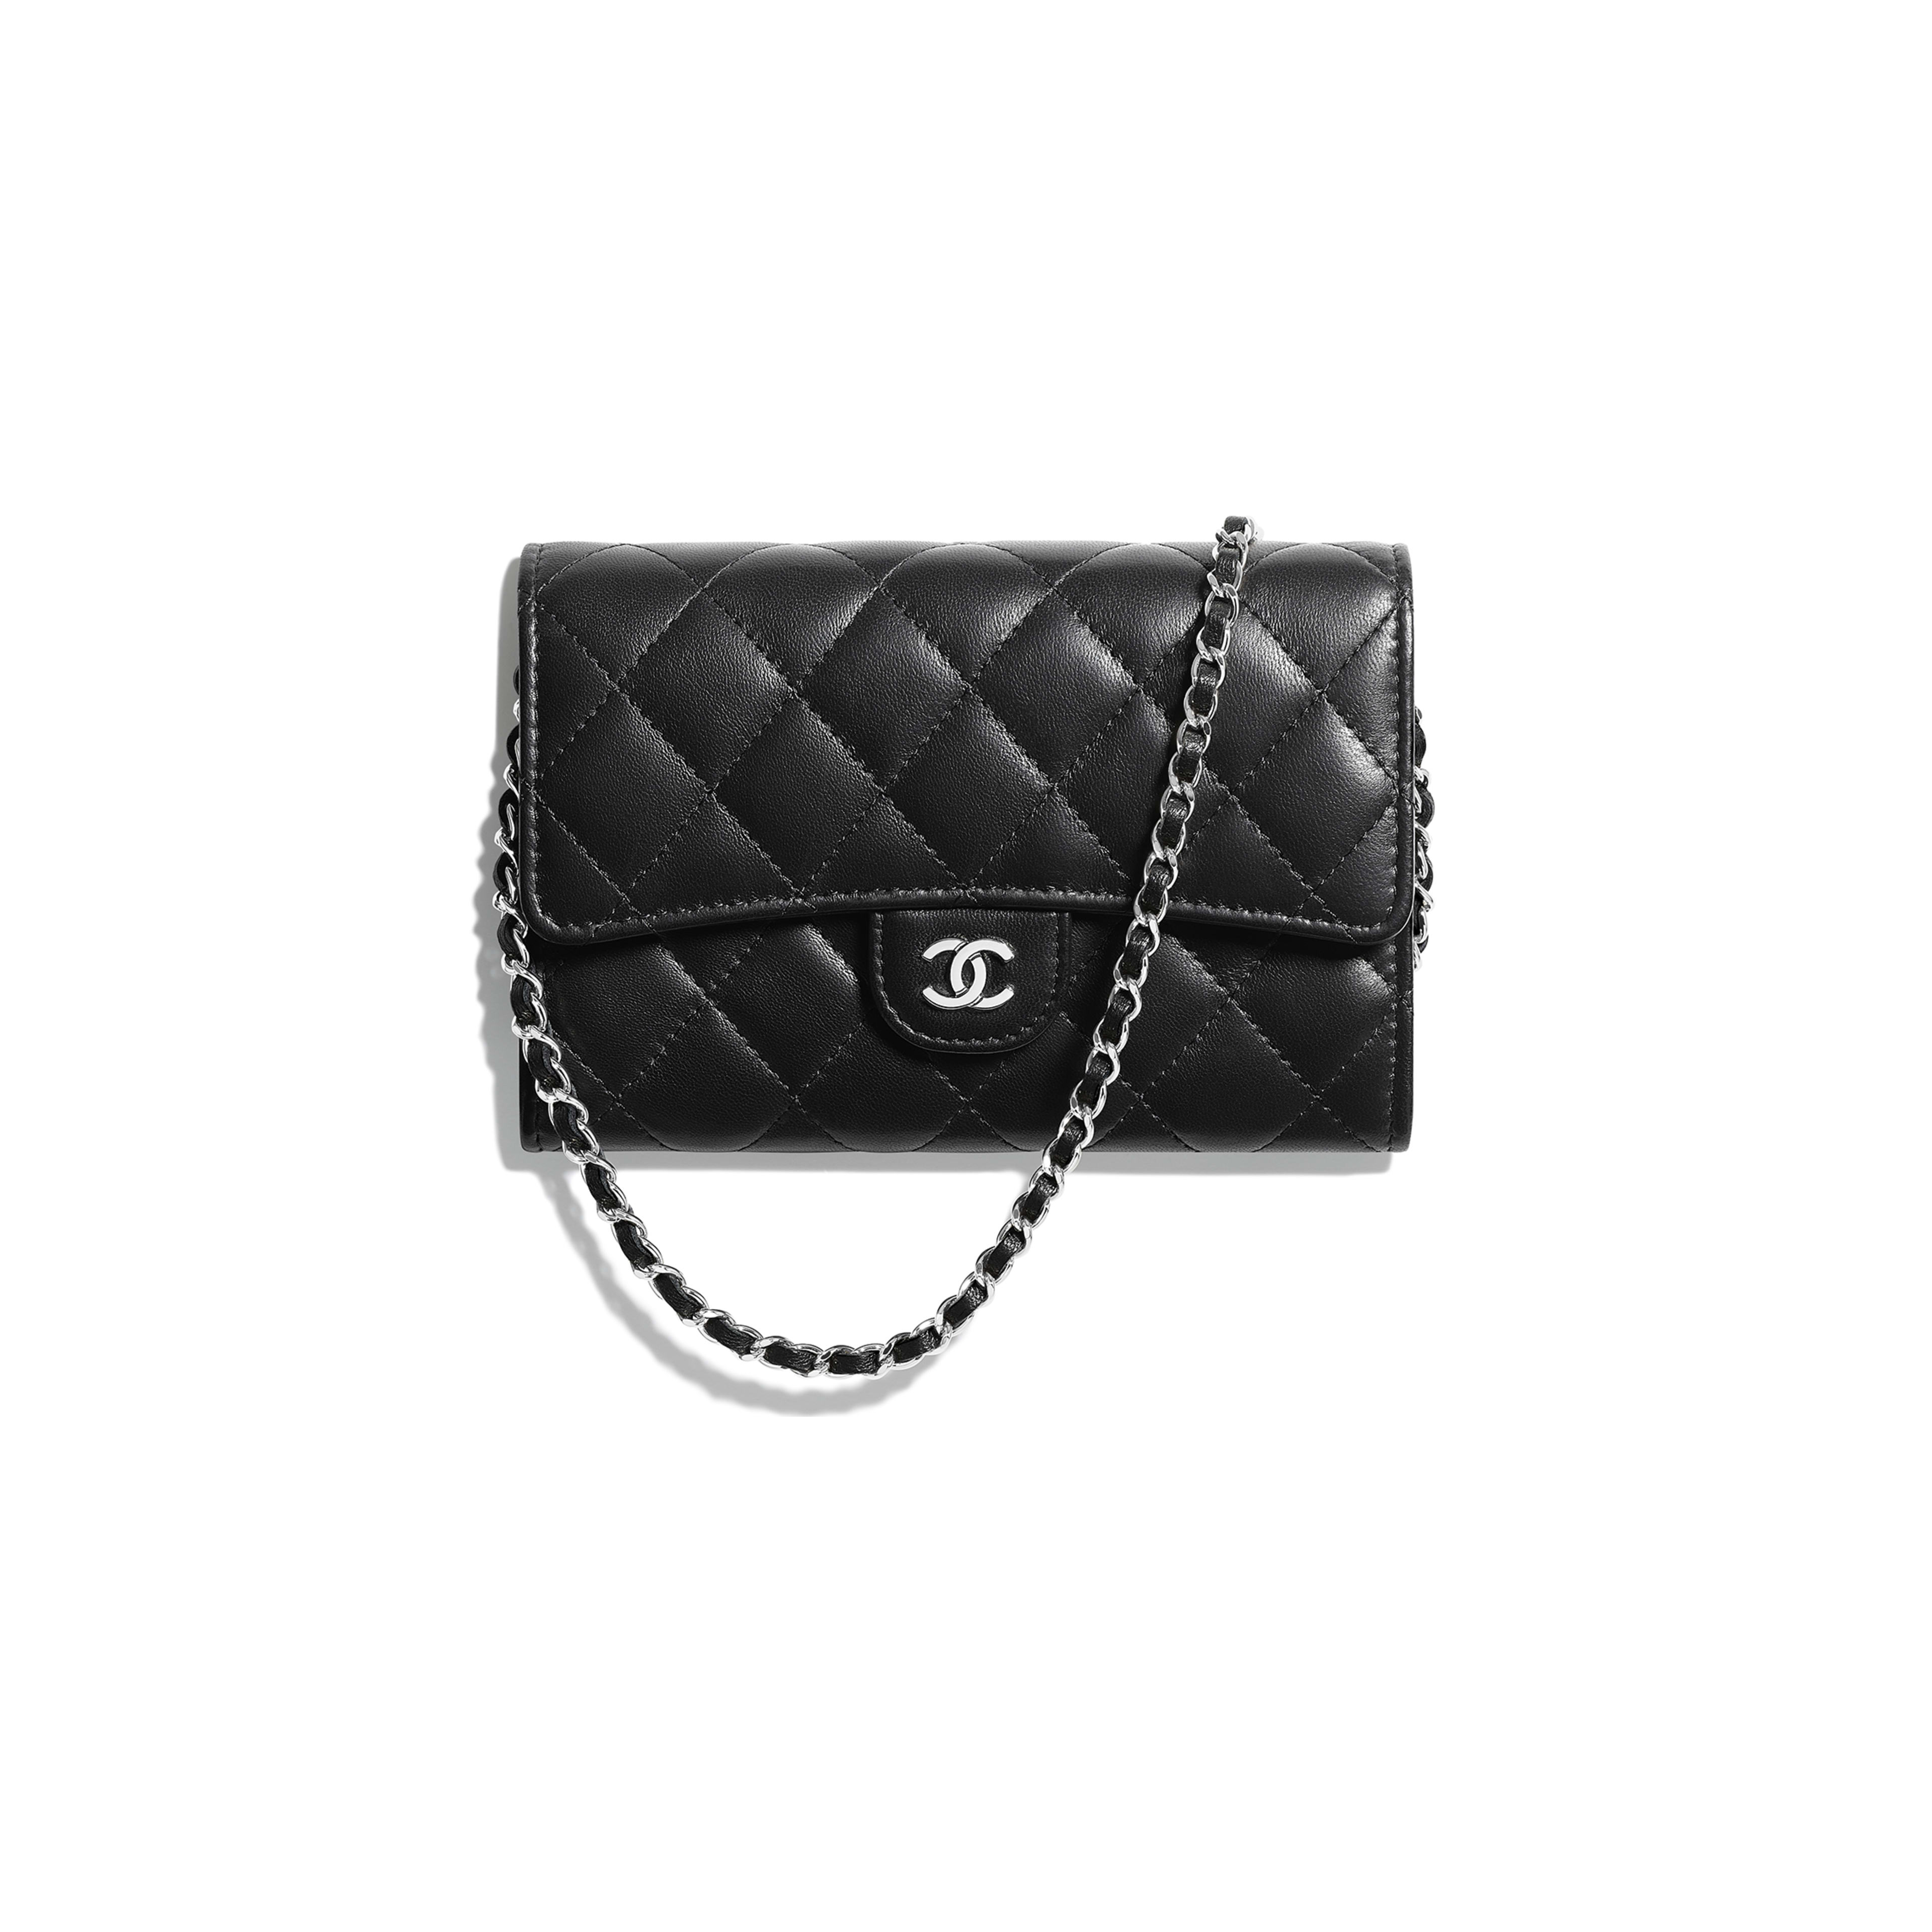 Classic Clutch With Chain - Black - Lambskin - Default view - see full sized version